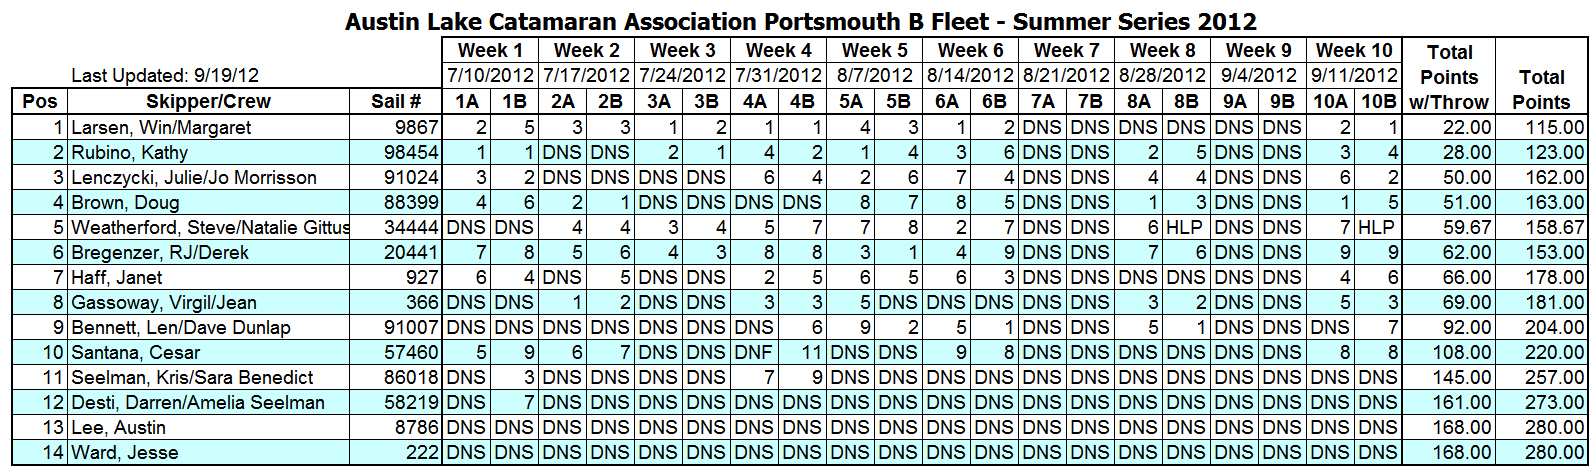 2012 Summer Portsmouth B Fleet Results